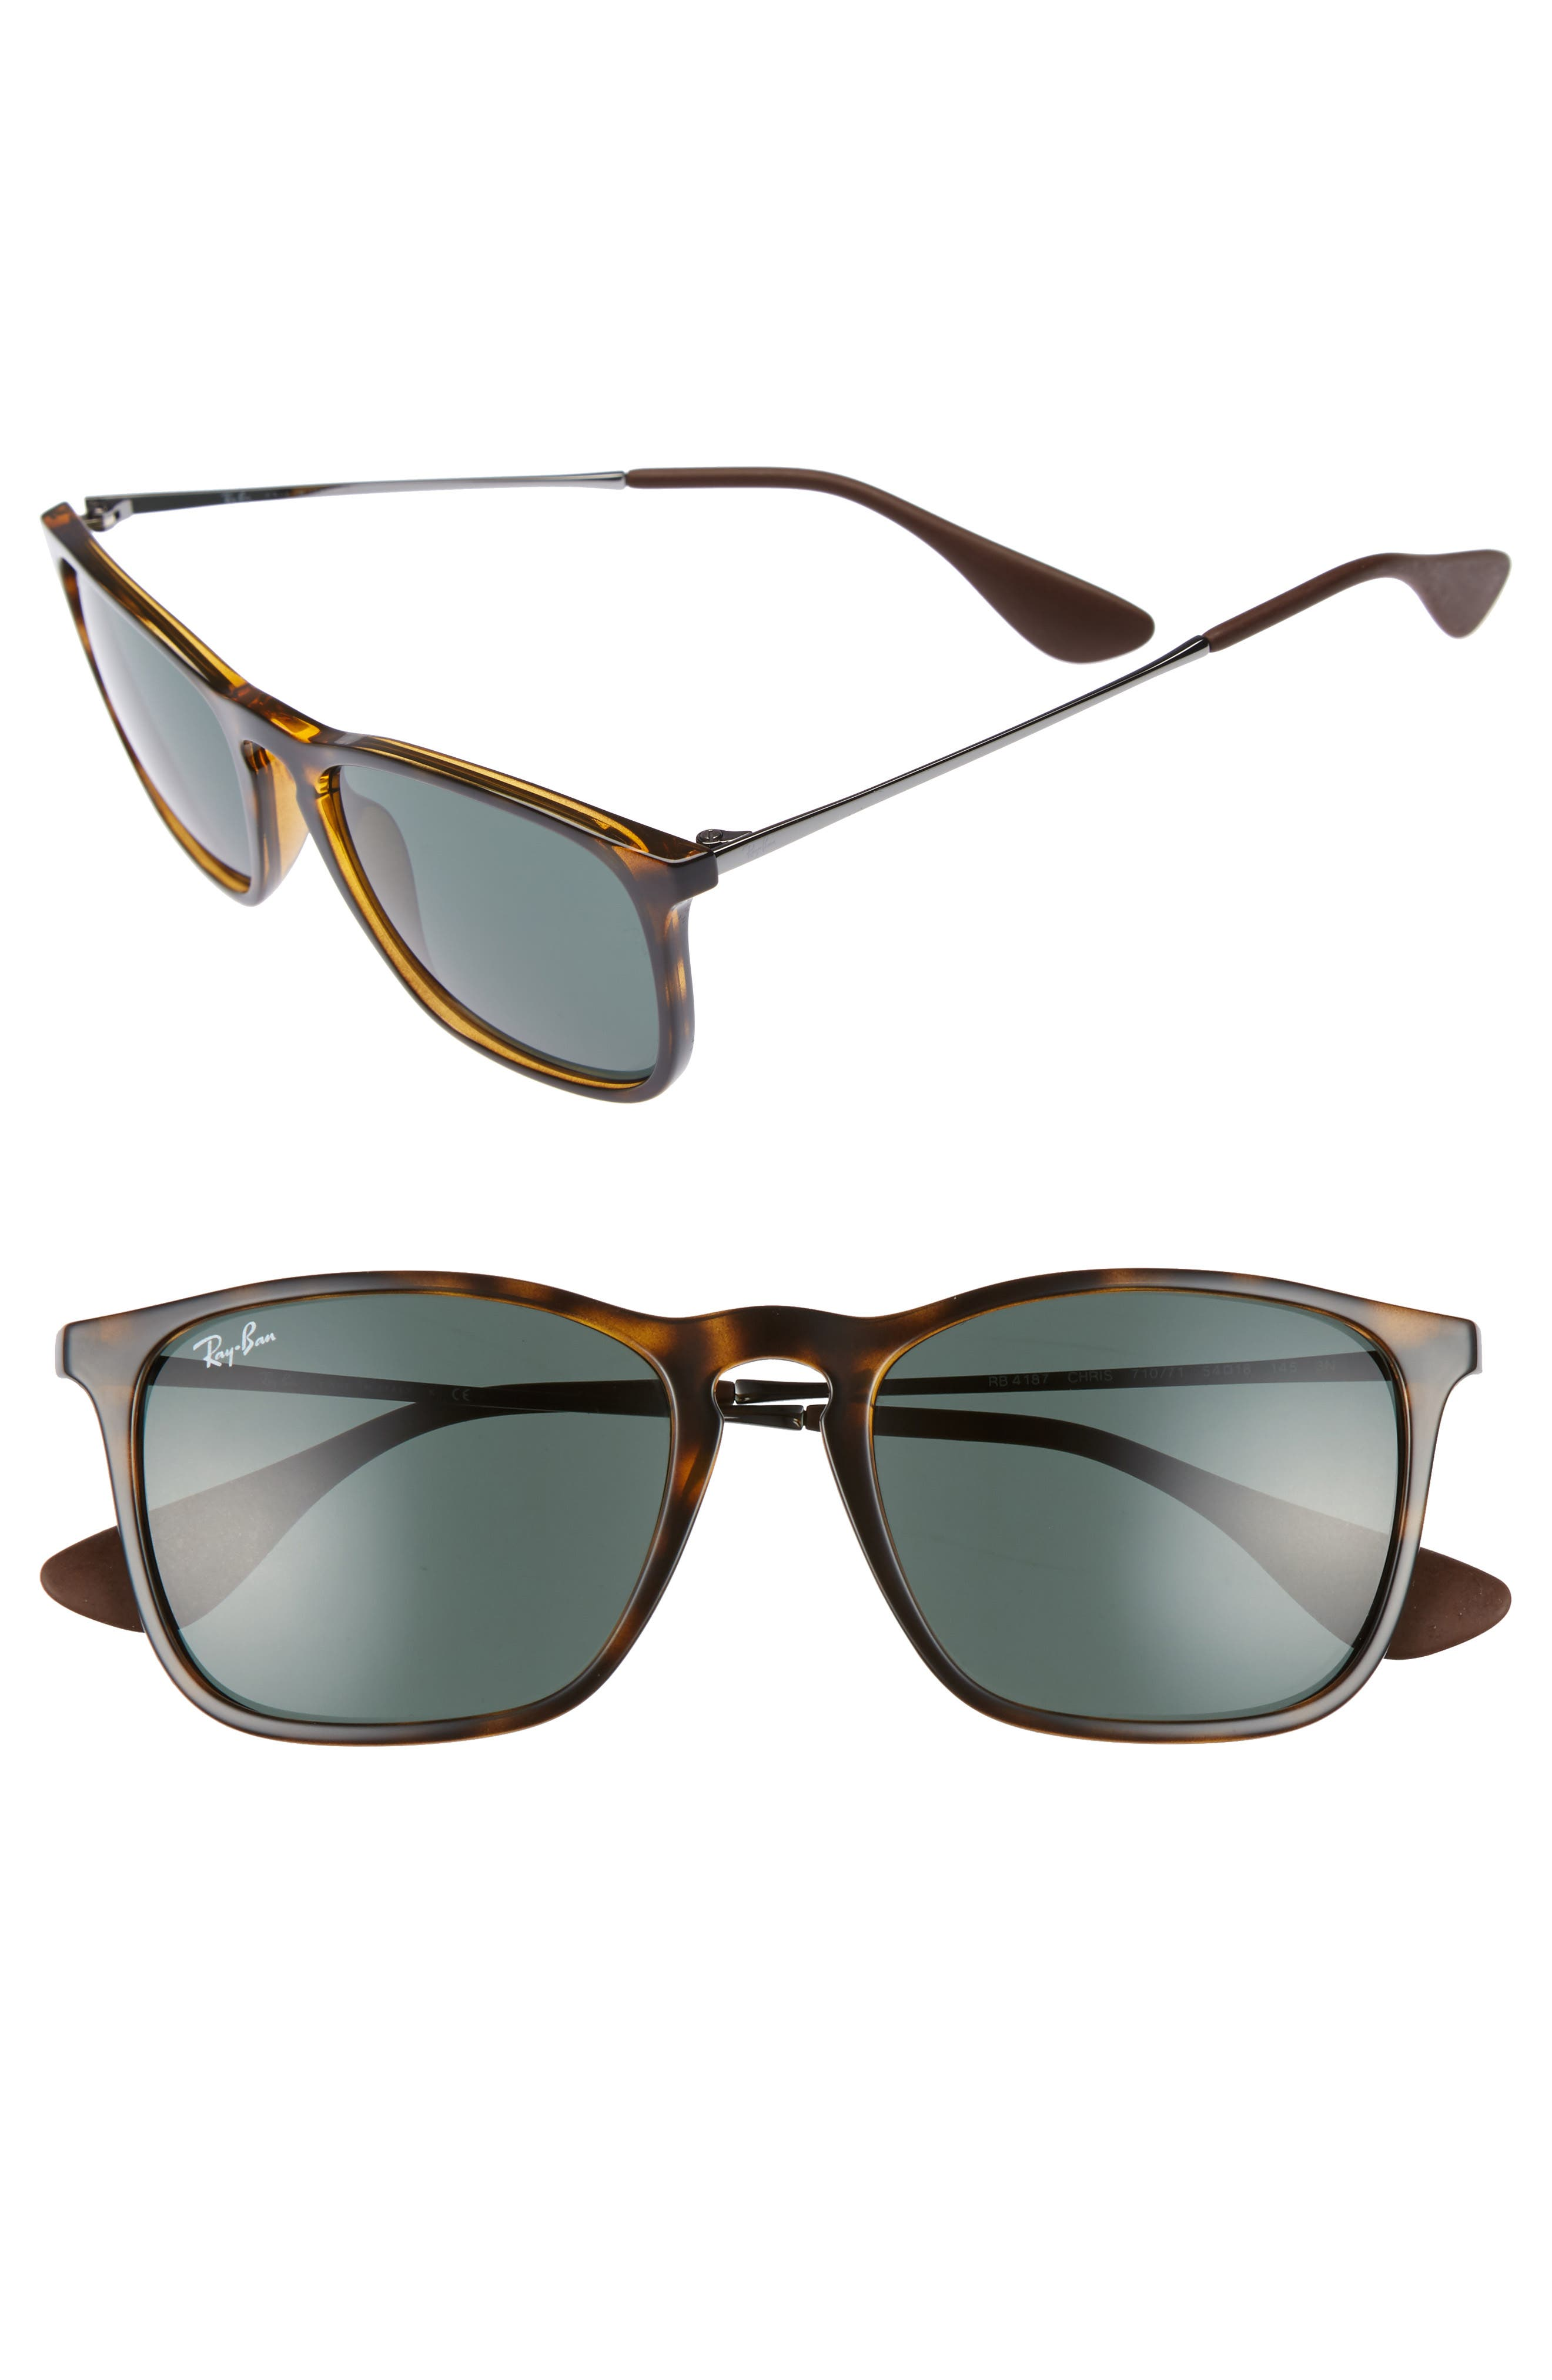 54mm Sunglasses,                             Main thumbnail 1, color,                             LIGHT HAVANA